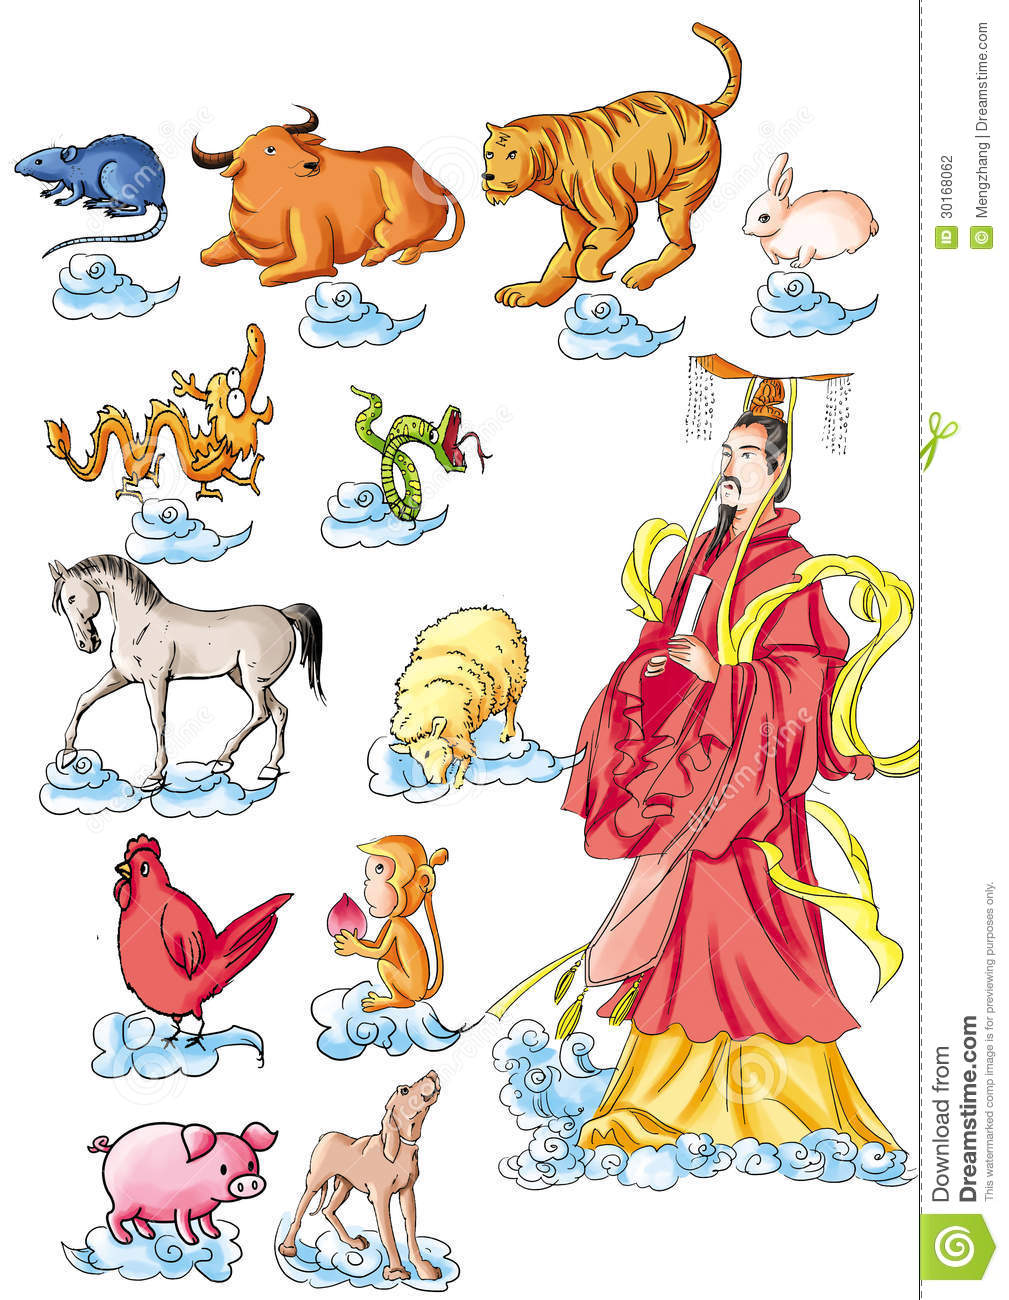 cf1fd846c CHINESE MYTHS&LEGENDS:Jade Emperor appoints twelve Chinese zodiac signs:  rat ox tiger rabbit dragon snake horses sheep dog, pig monkey Chicken